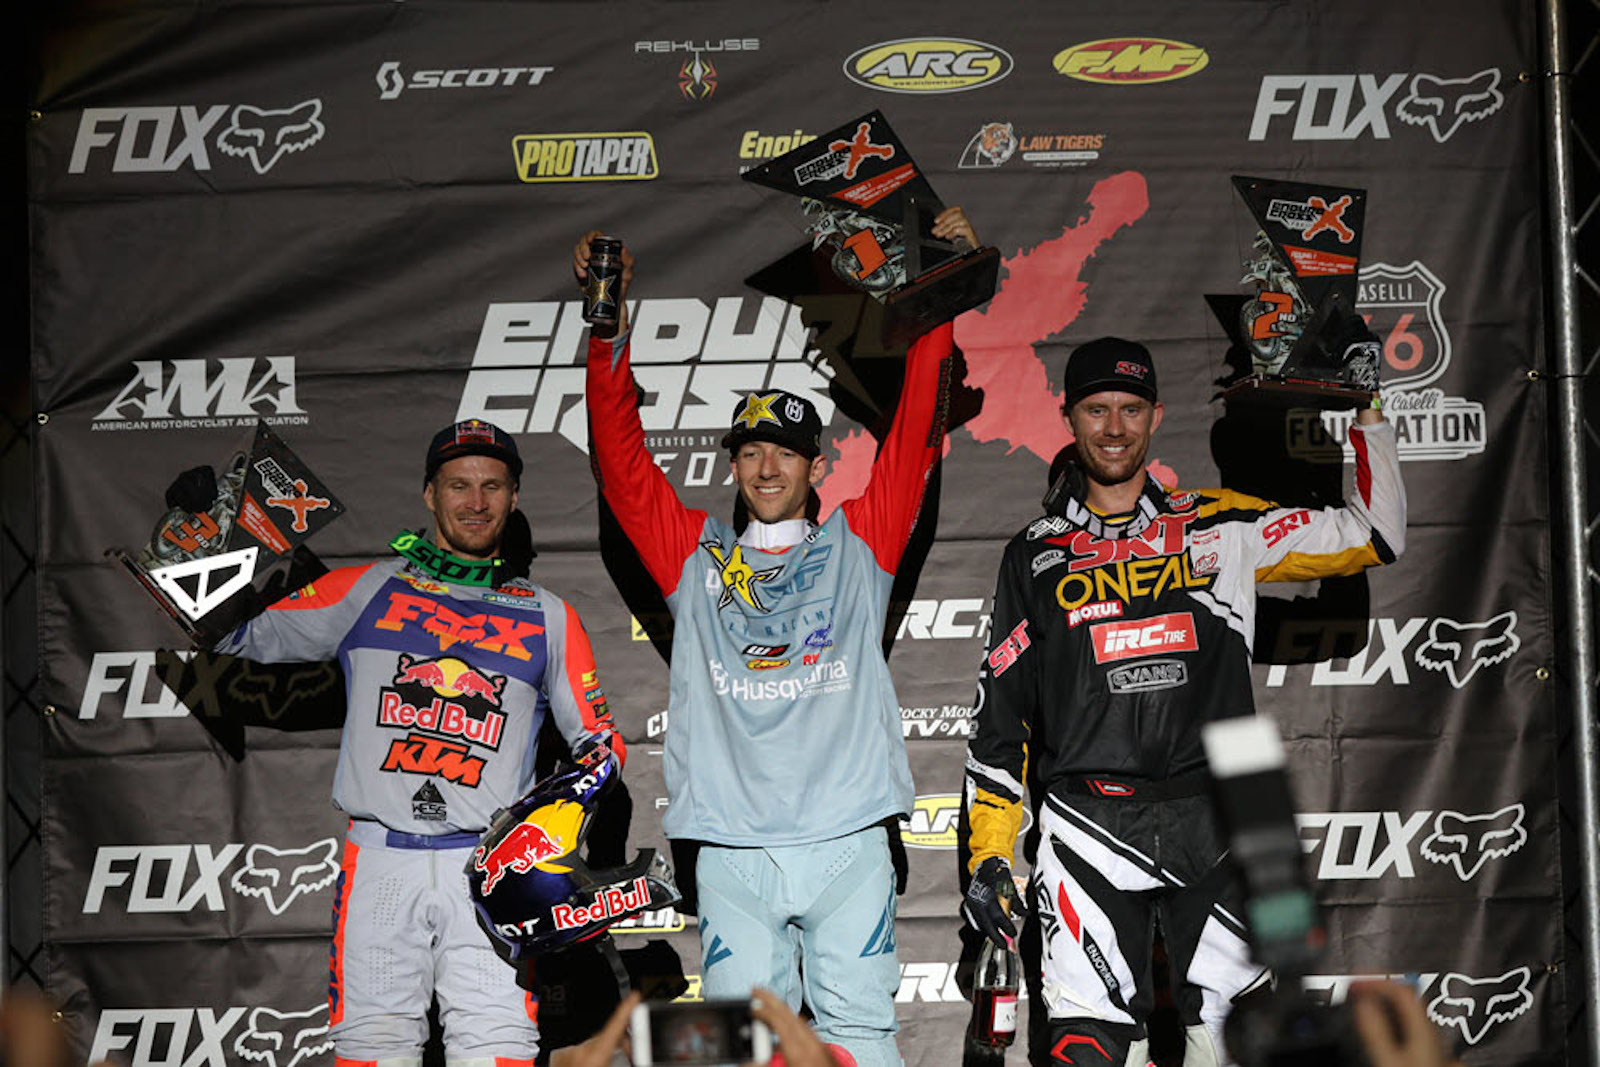 2019 EnduroCross championship back in action this weekend in Denver